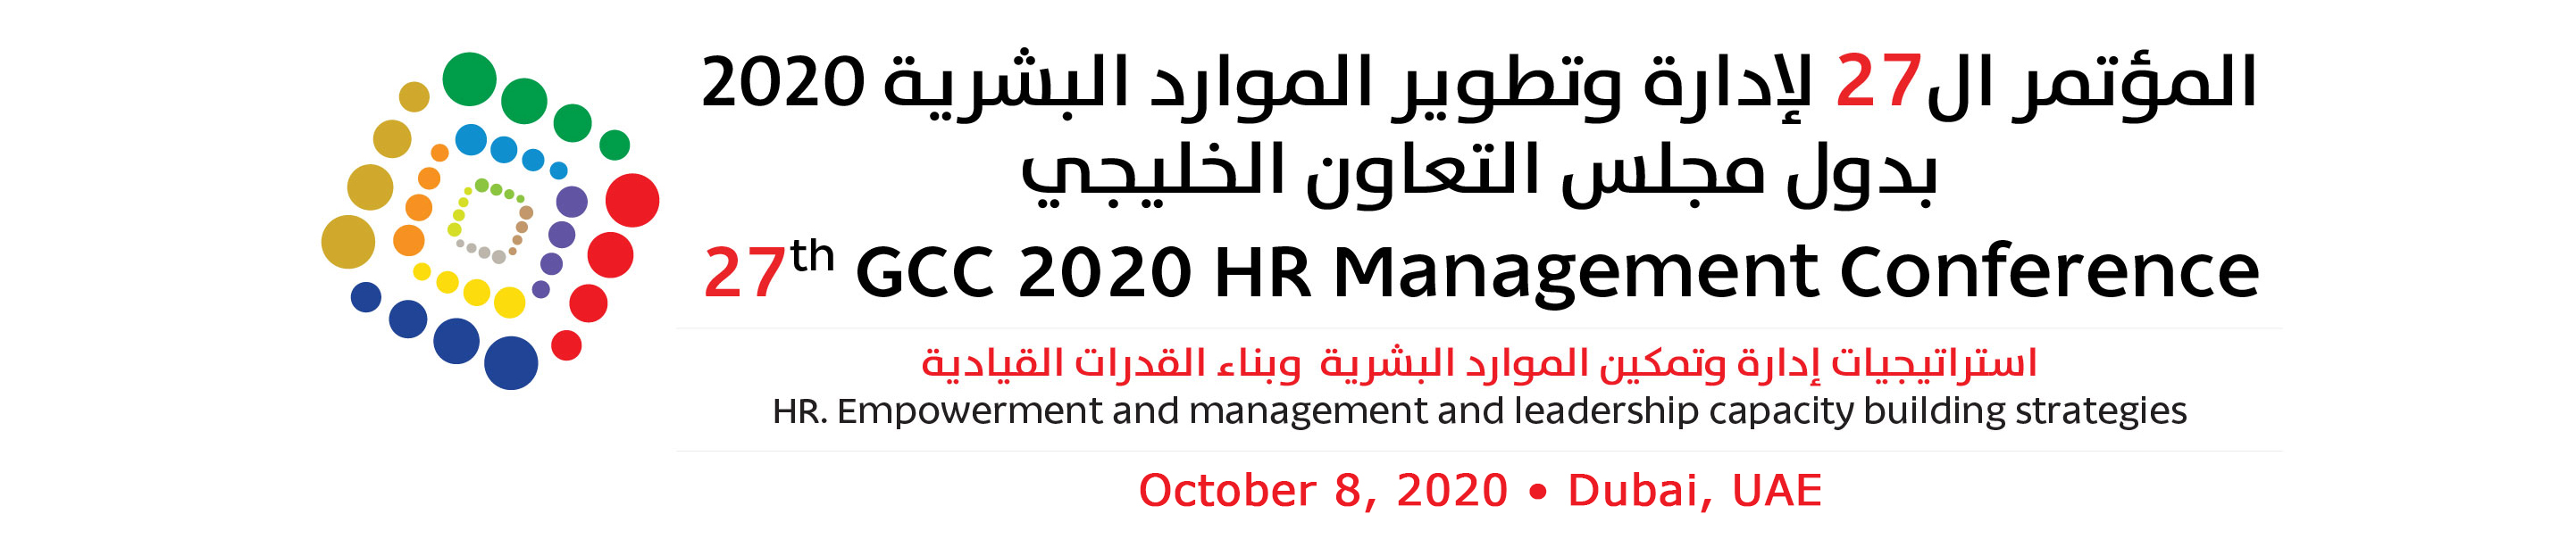 27th GCC 2020 HR Management Conference